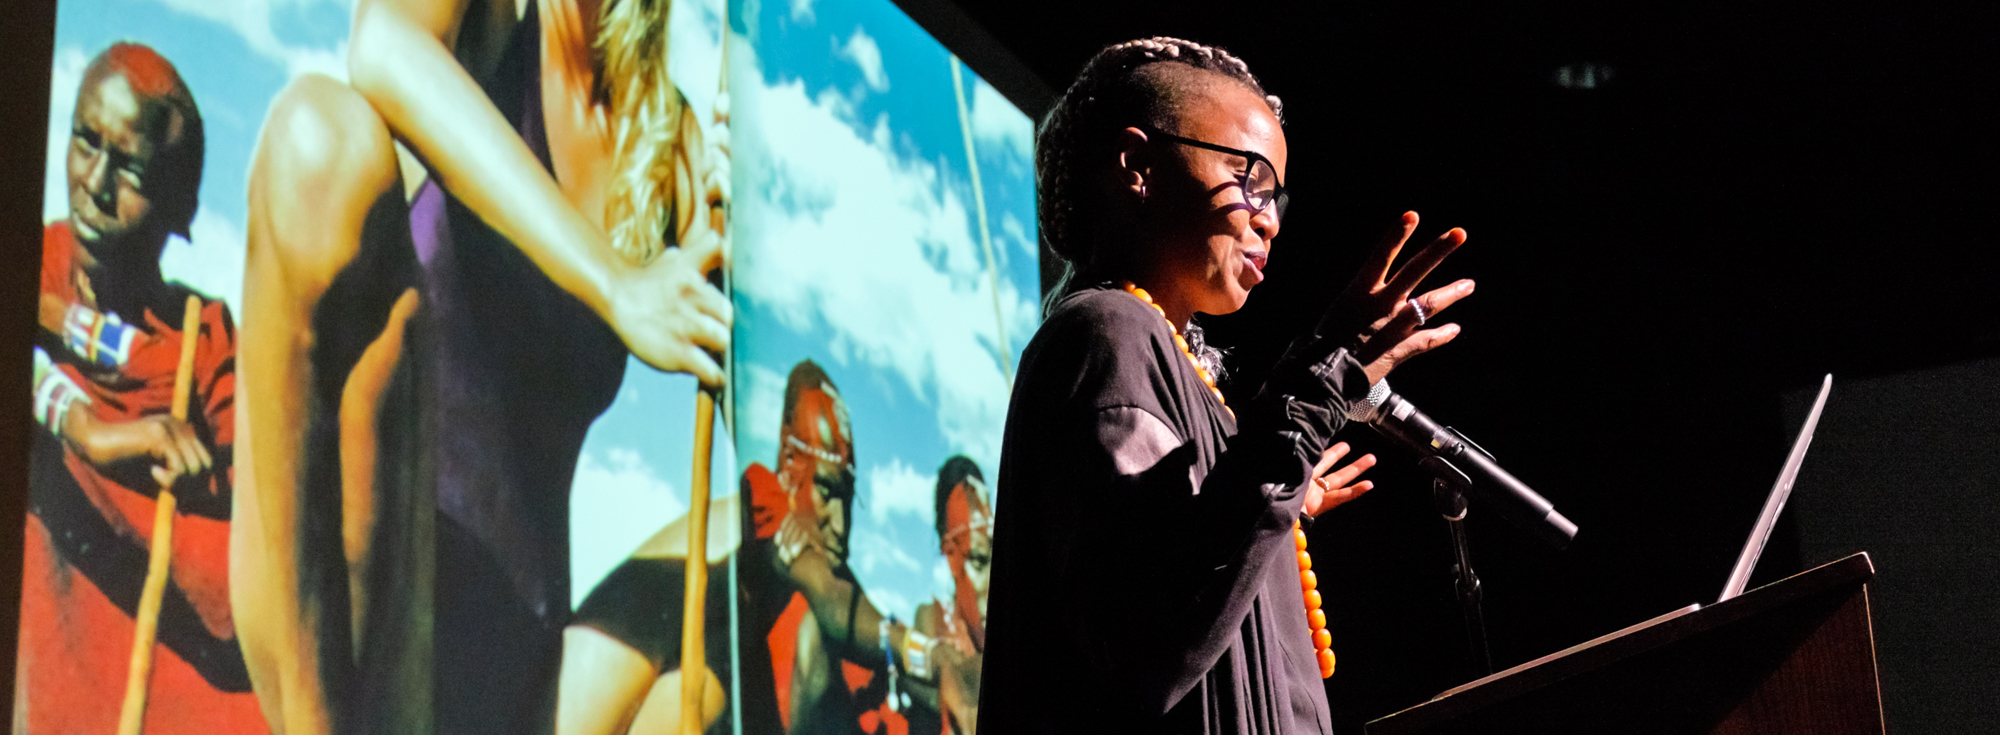 Wangechi Mutu speaking at a podium with microphone in front of a projected image